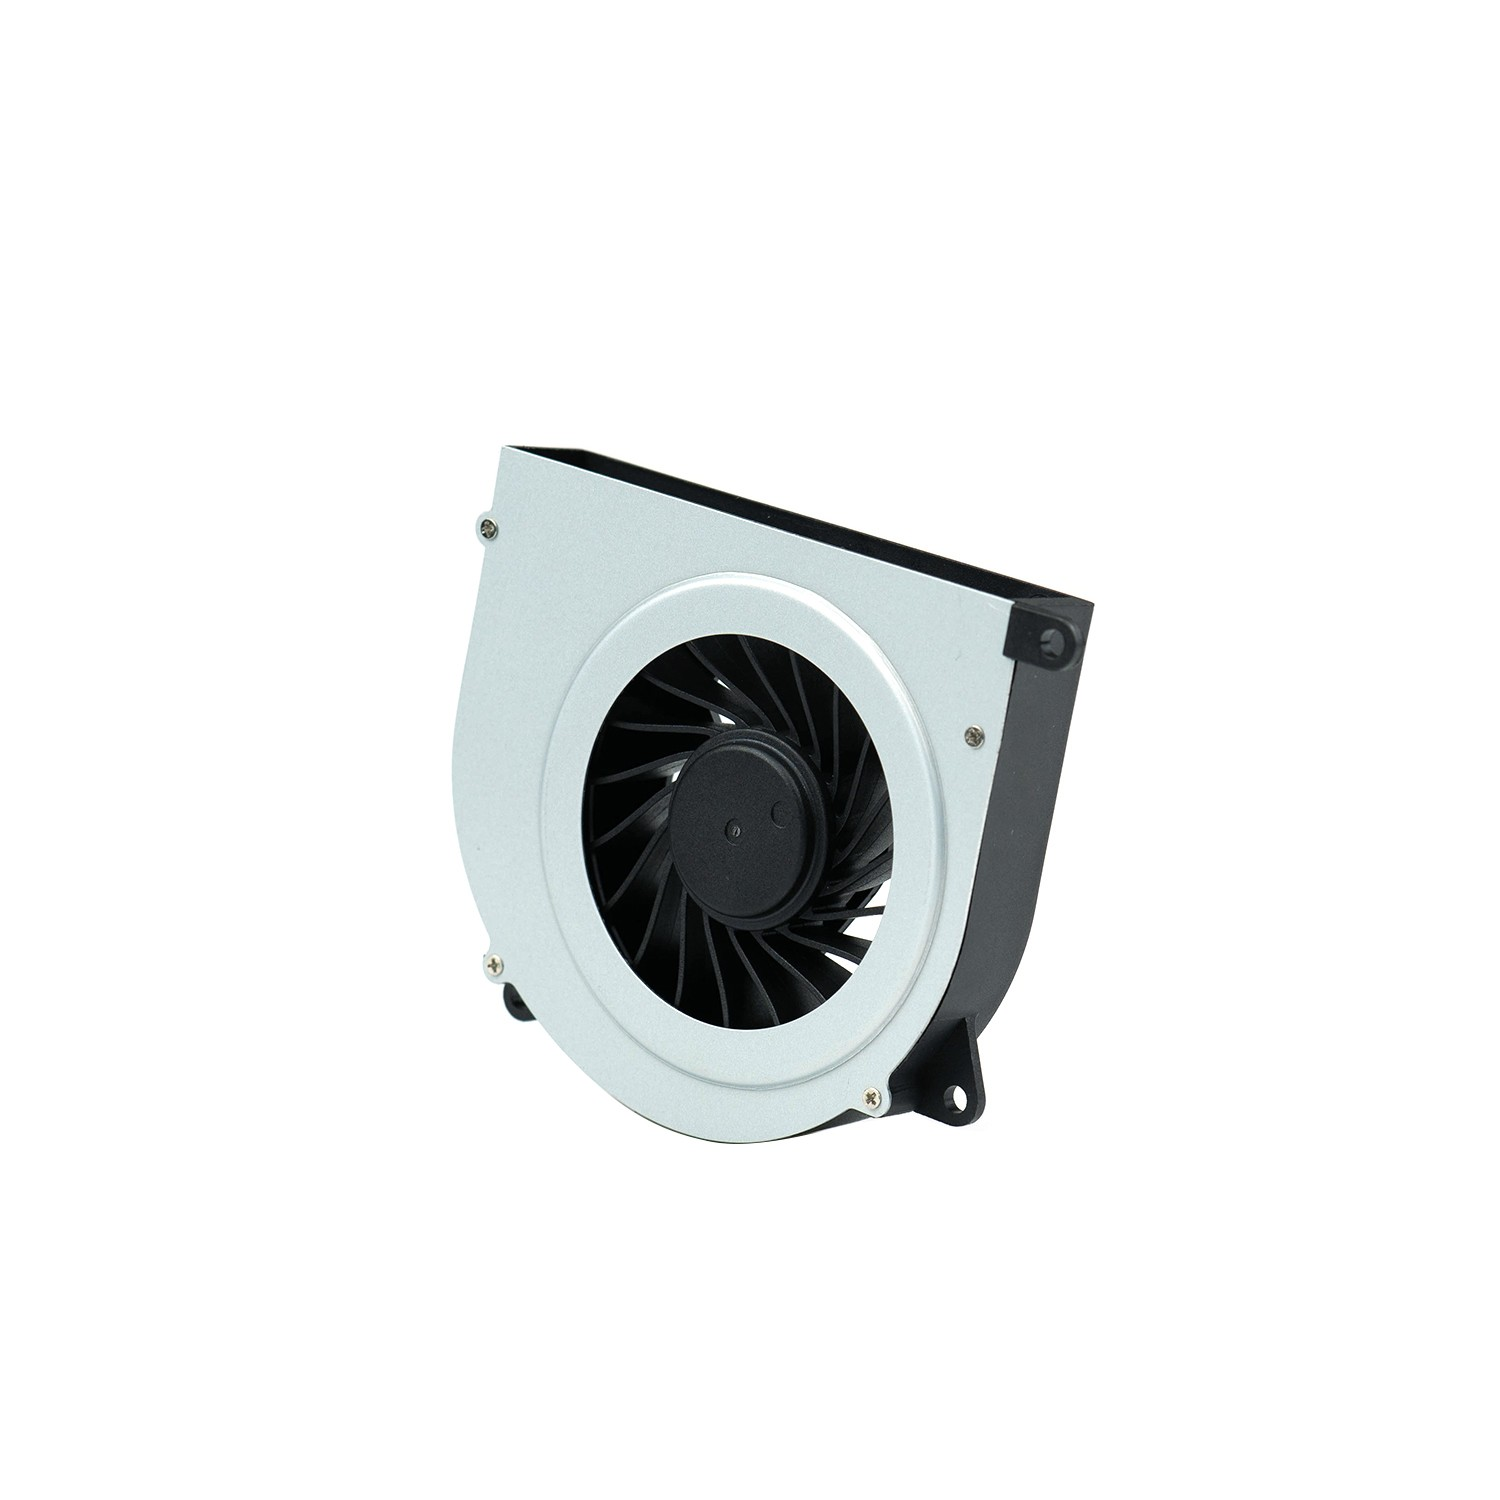 70X70X15mm DC Blower exhaust ventilation 12V cooling fan Manufacturers, 70X70X15mm DC Blower exhaust ventilation 12V cooling fan Factory, Supply 70X70X15mm DC Blower exhaust ventilation 12V cooling fan